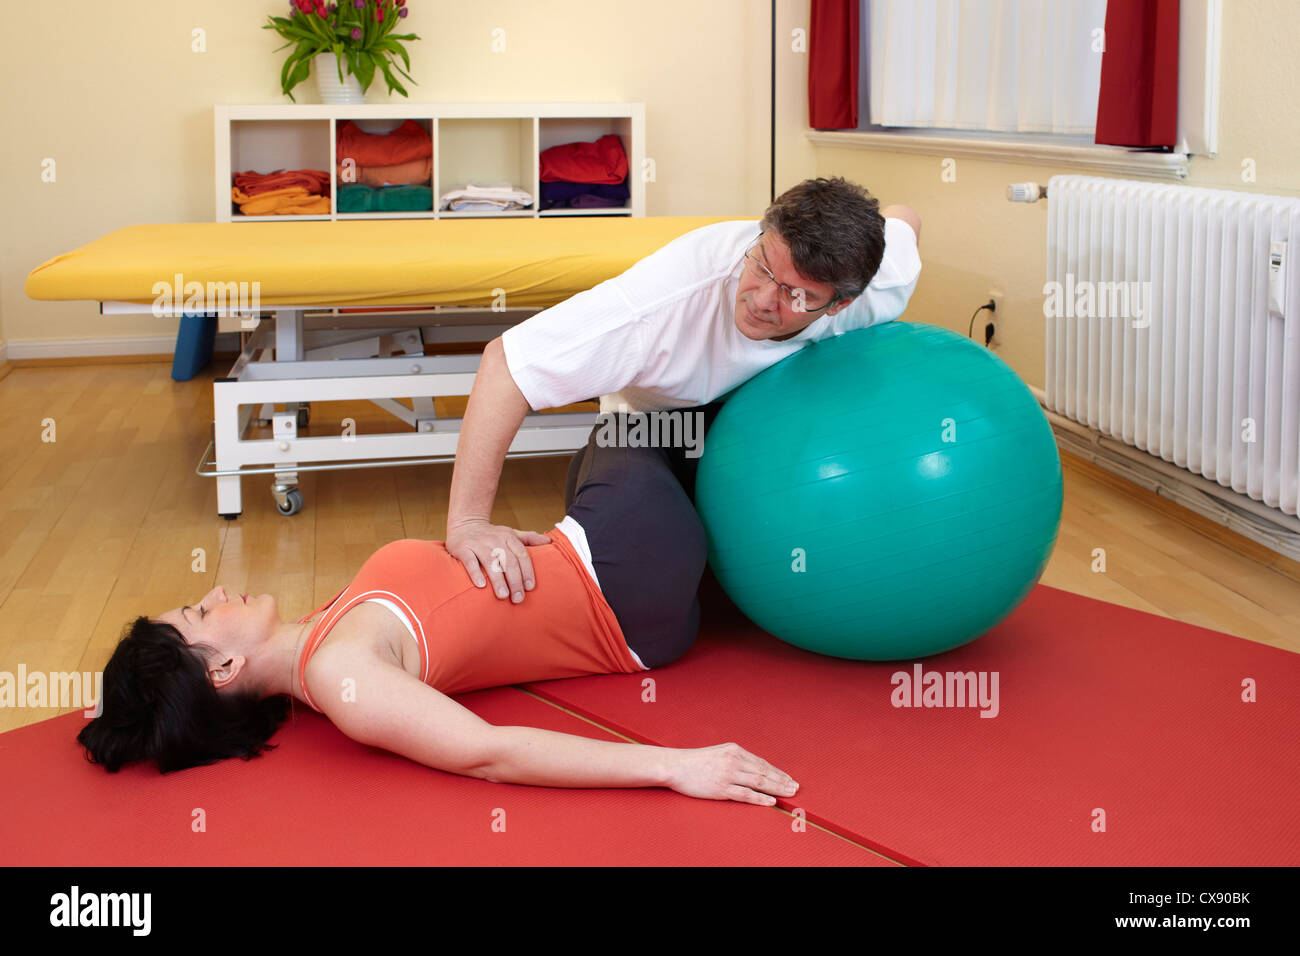 adult practicing poses with exercise ball and professional physiotherapist - Stock Image